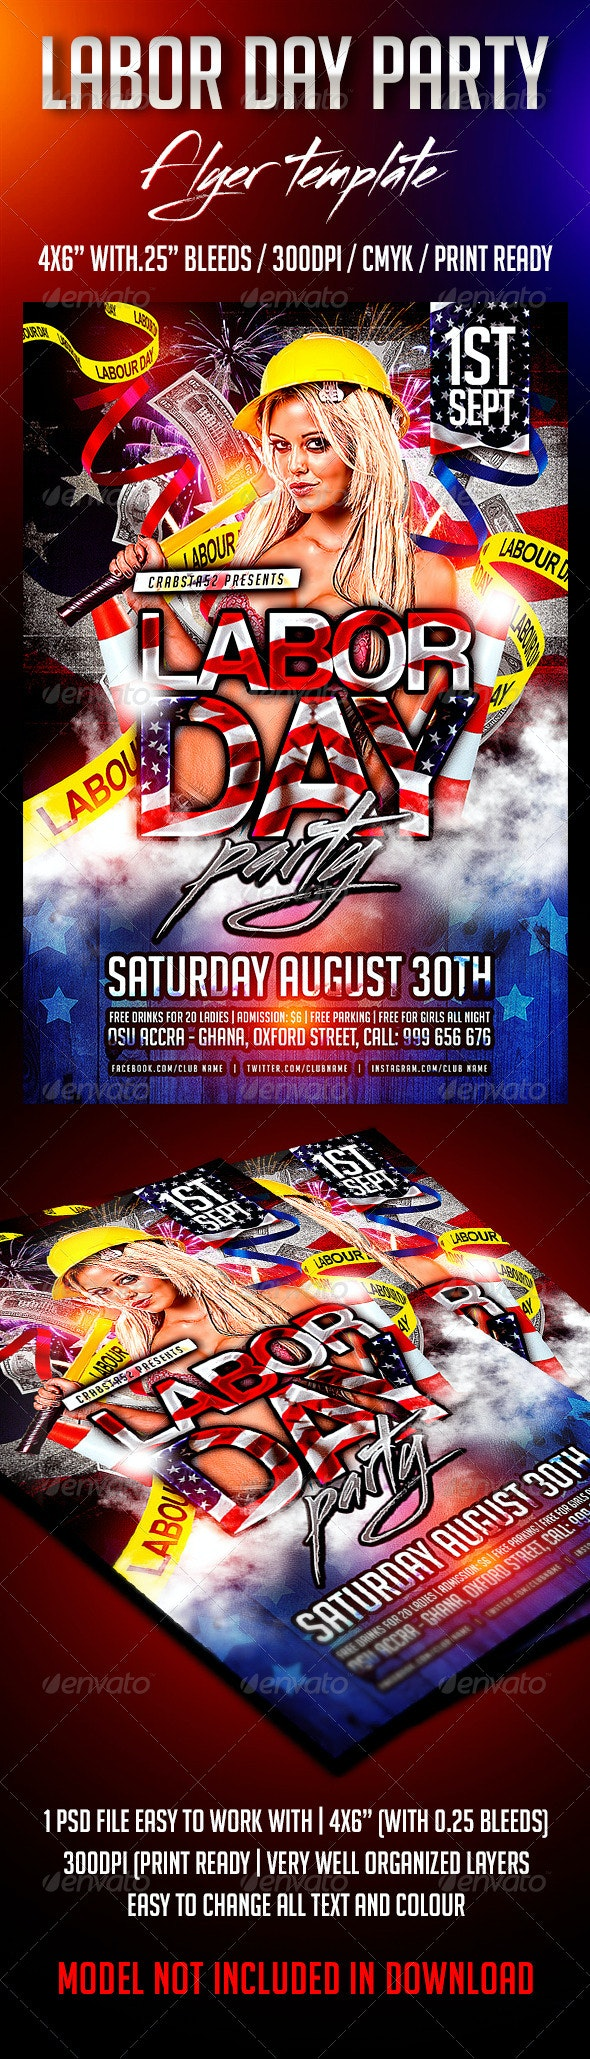 Labour Day Party Flyer Template - Flyers Print Templates